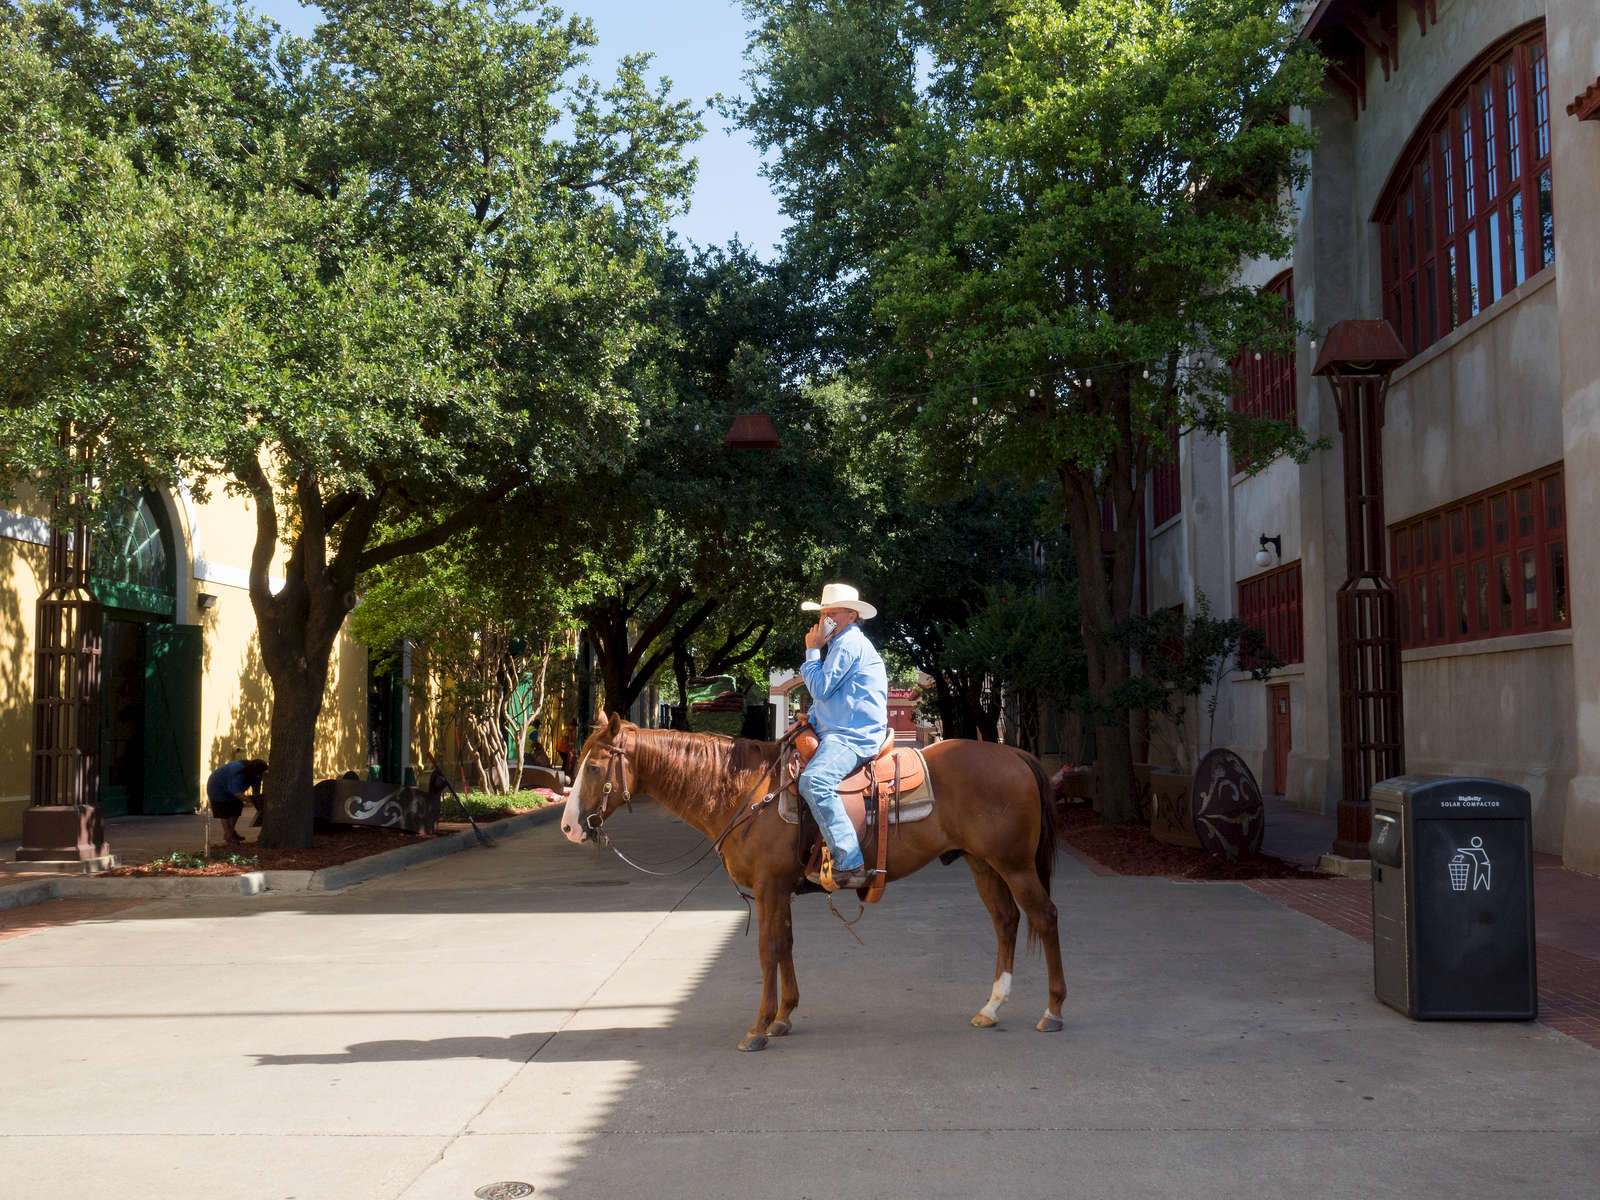 A man in a cowboy hat talks on his cell phone while sat on a horse.Dallas is a major city in Texas and is the largest urban center of the fourth most populous metropolitan area in the United States. The city ranks ninth in the U.S. and third in Texas after Houston and San Antonio. The city's prominence arose from its historical importance as a center for the oil and cotton industries, and its position along numerous railroad lines.For two weeks in the summer of 2015, photographer Peter Dench visited Dallas to document the metroplex in his epic reportage, DENCH DOES DALLAS.Photographed using an Olympus E-M5 Mark II©Peter Dench/Getty Images Reportage